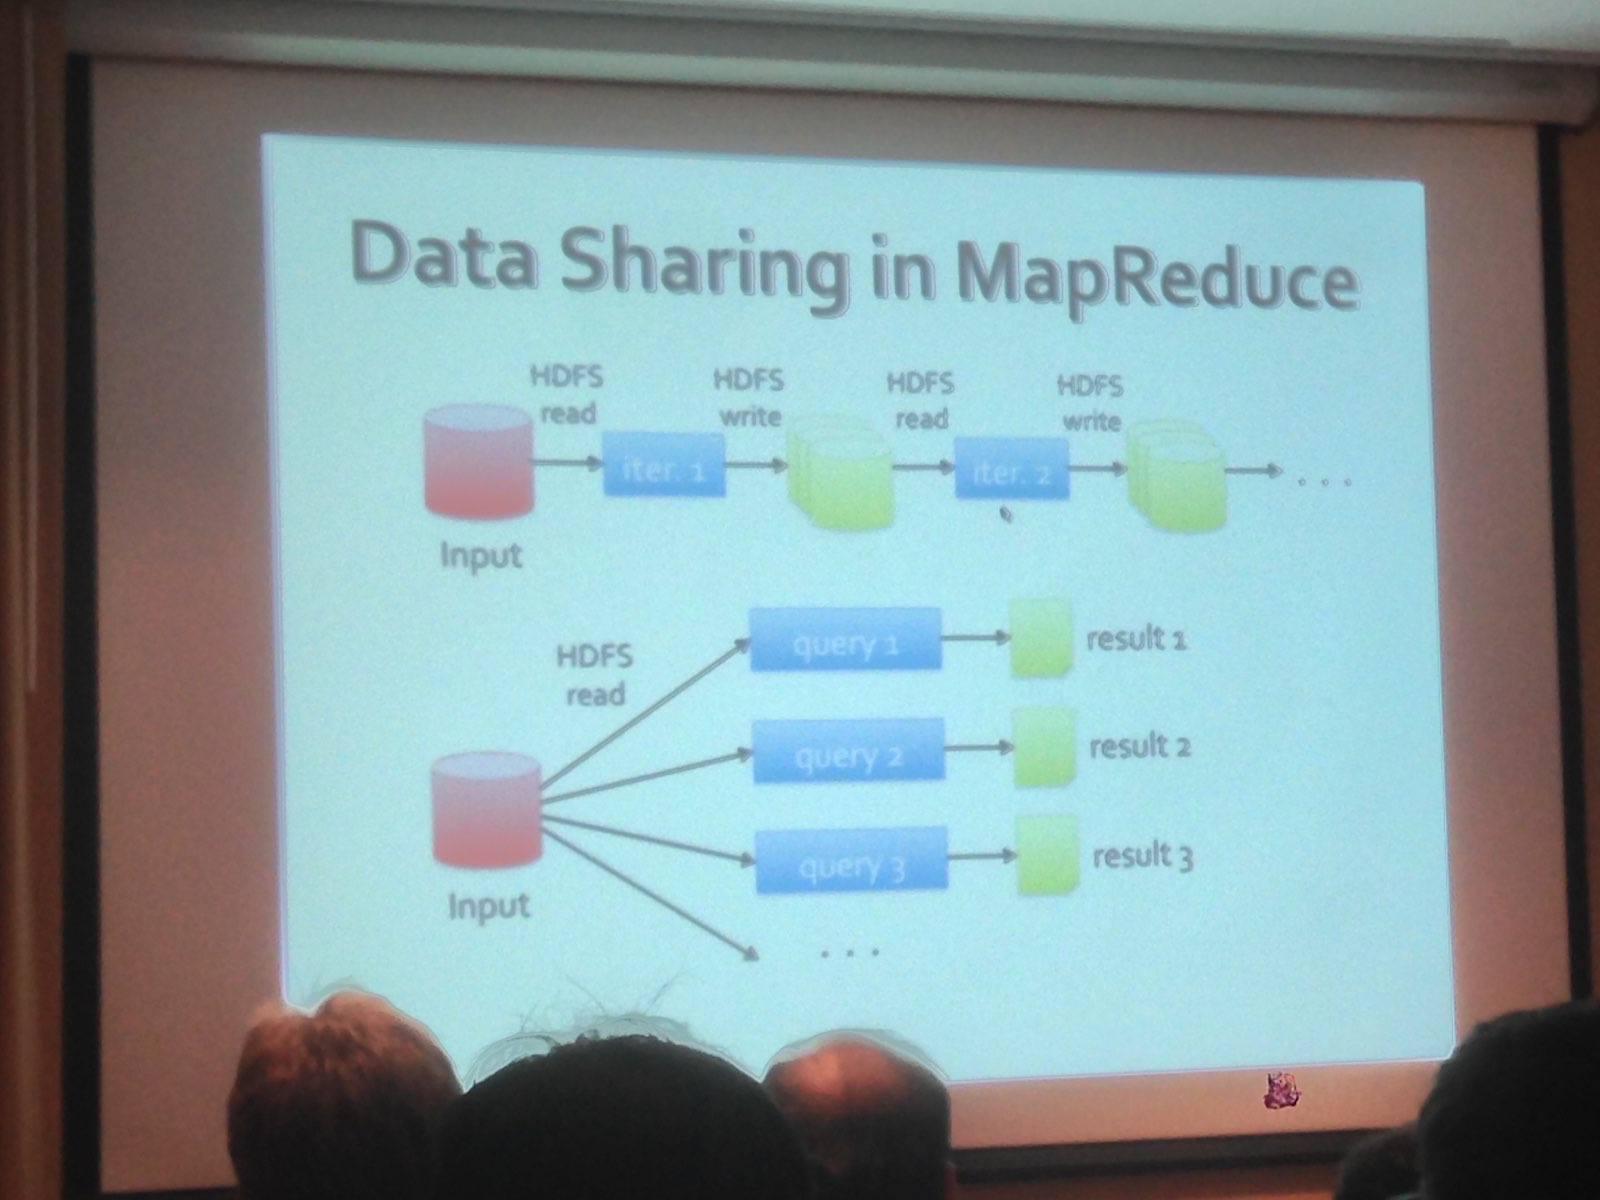 Data sharing in MapReduce